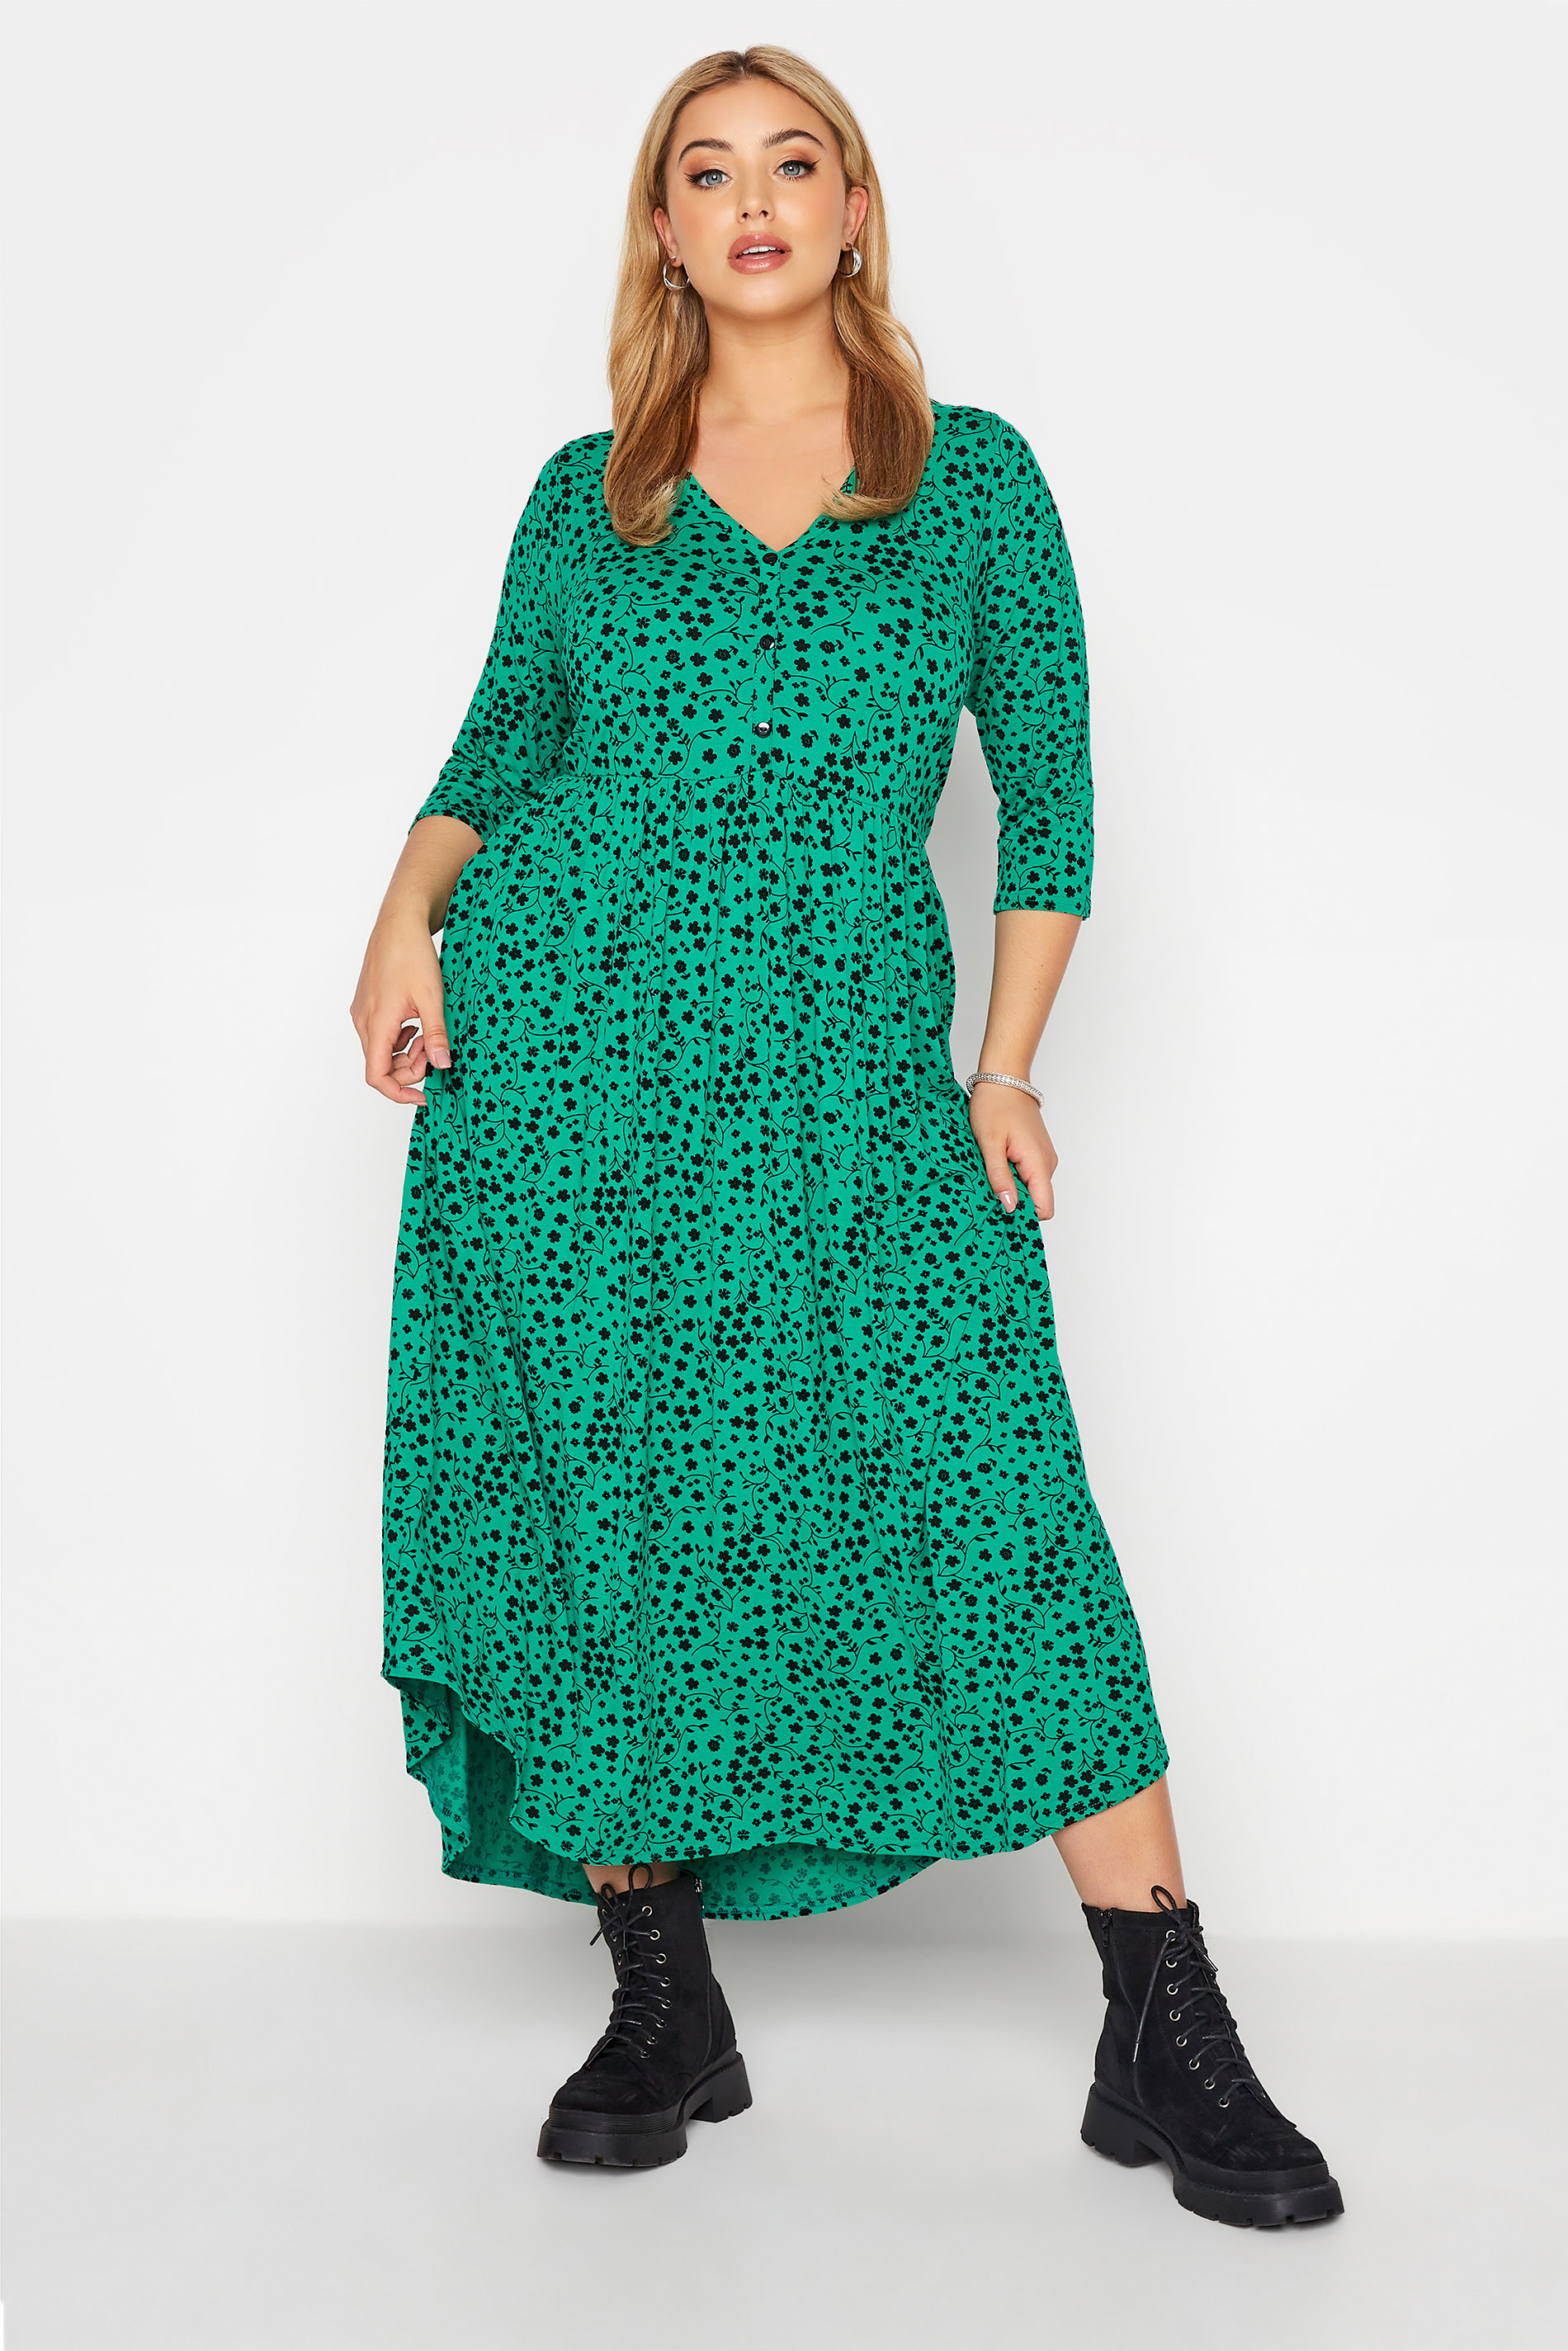 LIMITED COLLECTION Green Floral Button Midaxi Dress_A.jpg